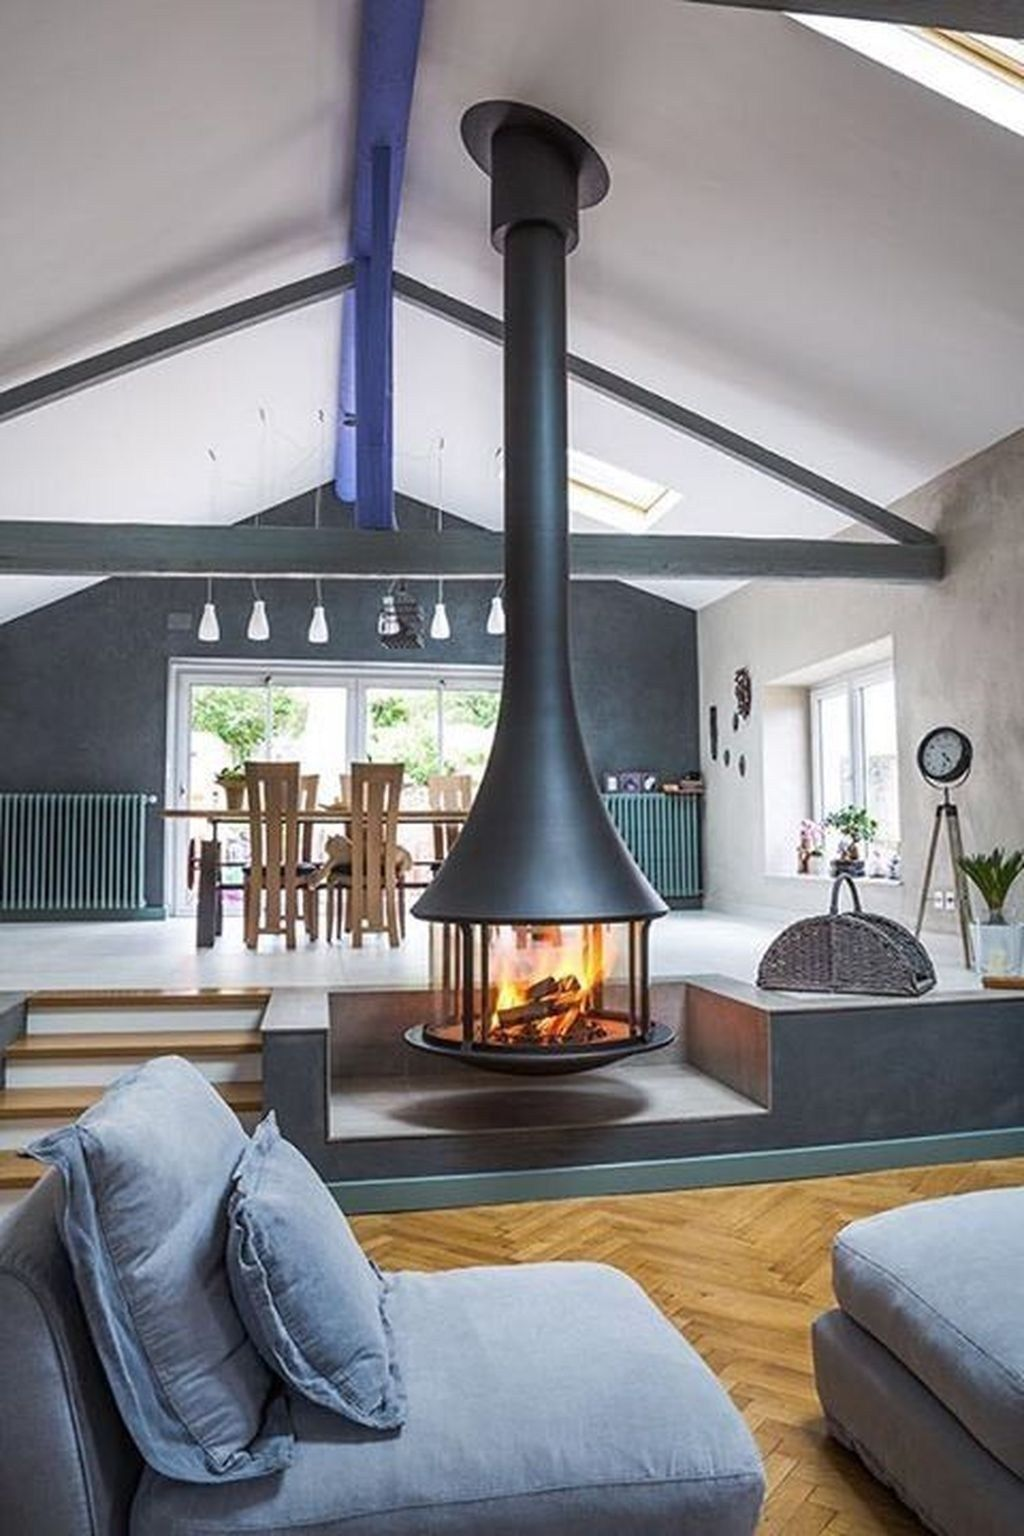 35 Attractive Living Room Ideas With Heating Fits The Winter